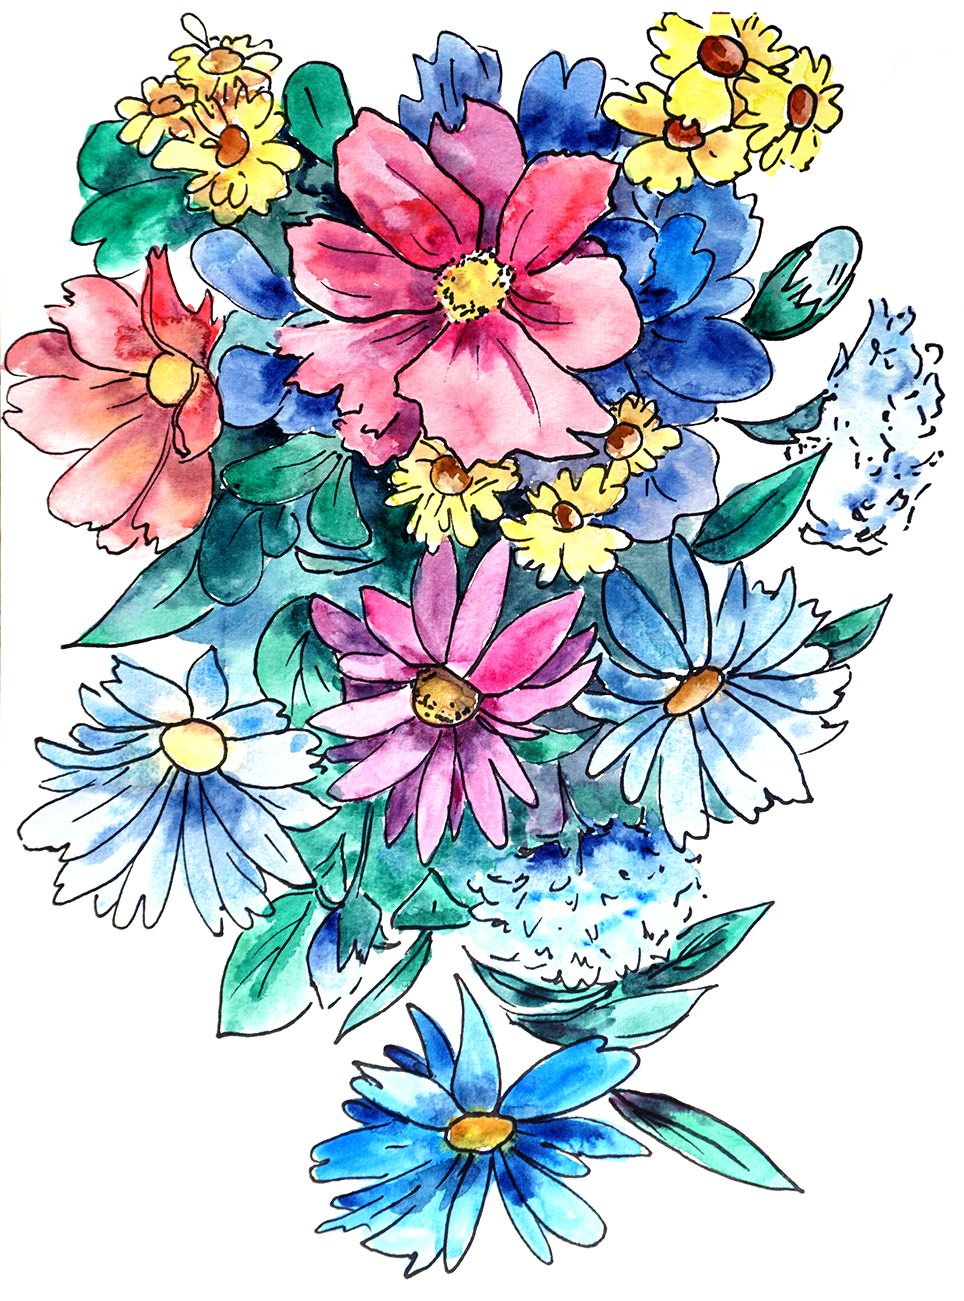 Watercolor Coloring Book Colorful Art Flower Drawing Floral Doodle